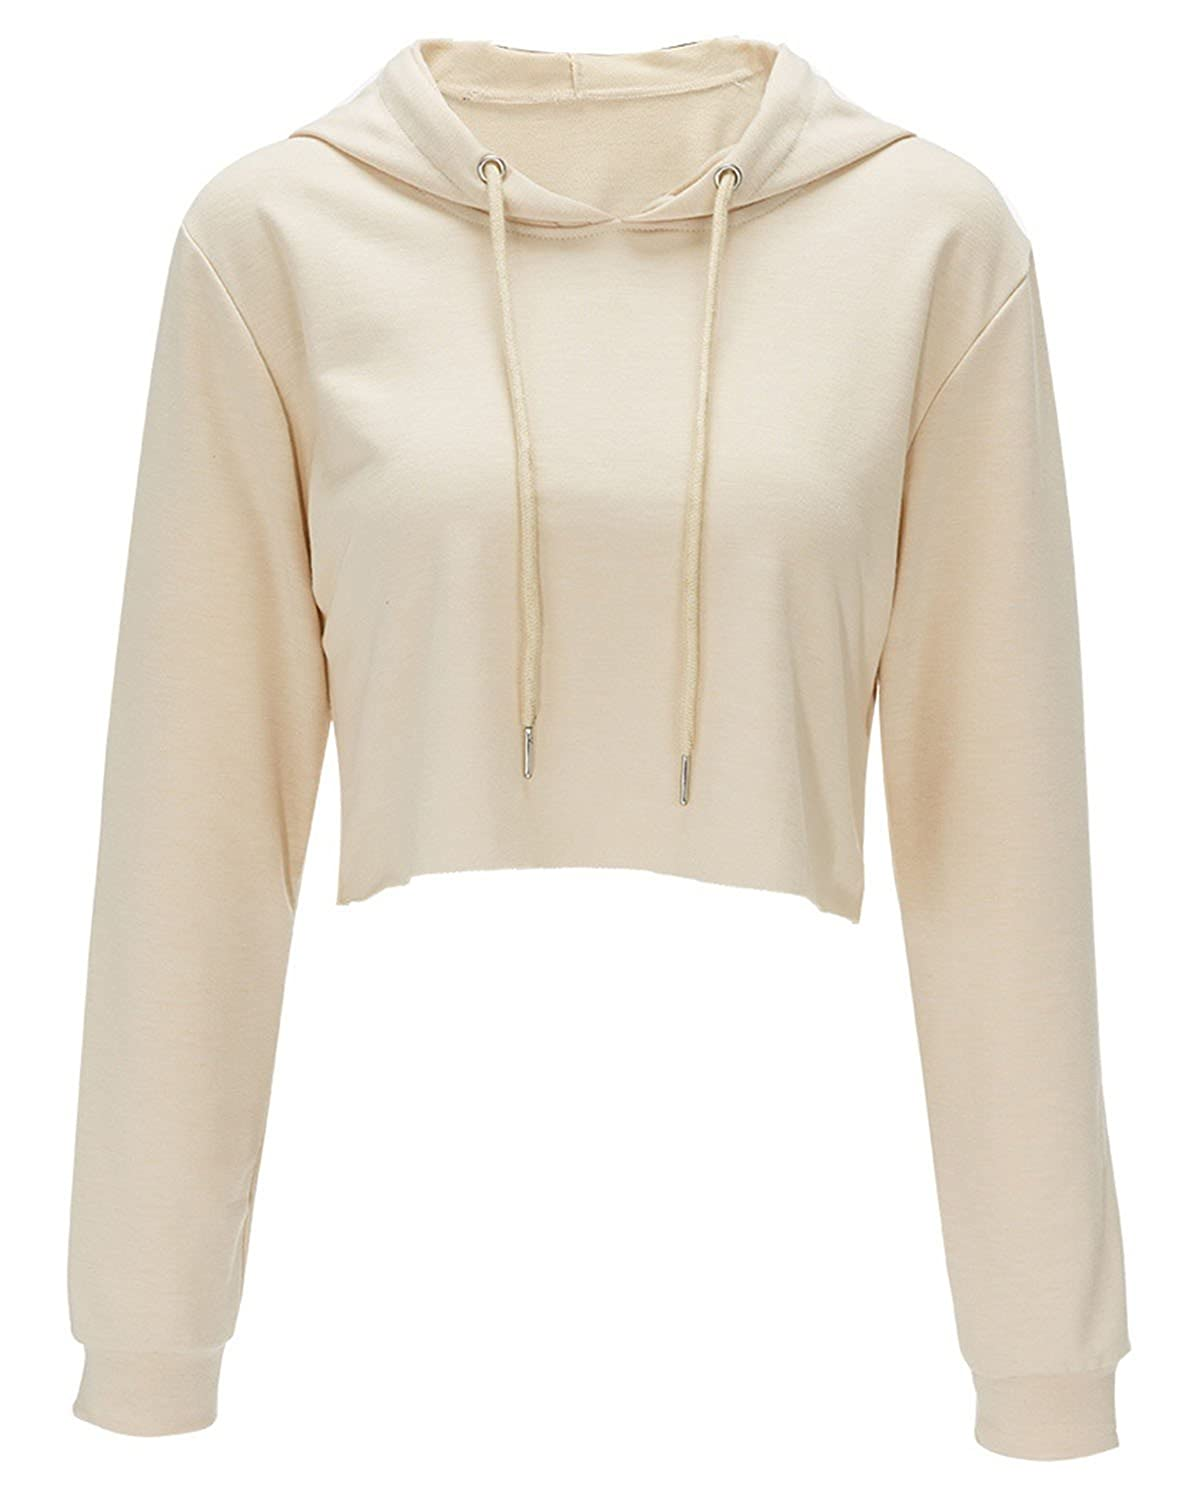 26b3f646c6 Style: O-neck, Long Sleeve, Hollow Hole, Exposed Navel, Sexy and Elgant.  Perfect for any occasion, like shopping, outdoor, party, everyday life,  beach, ...